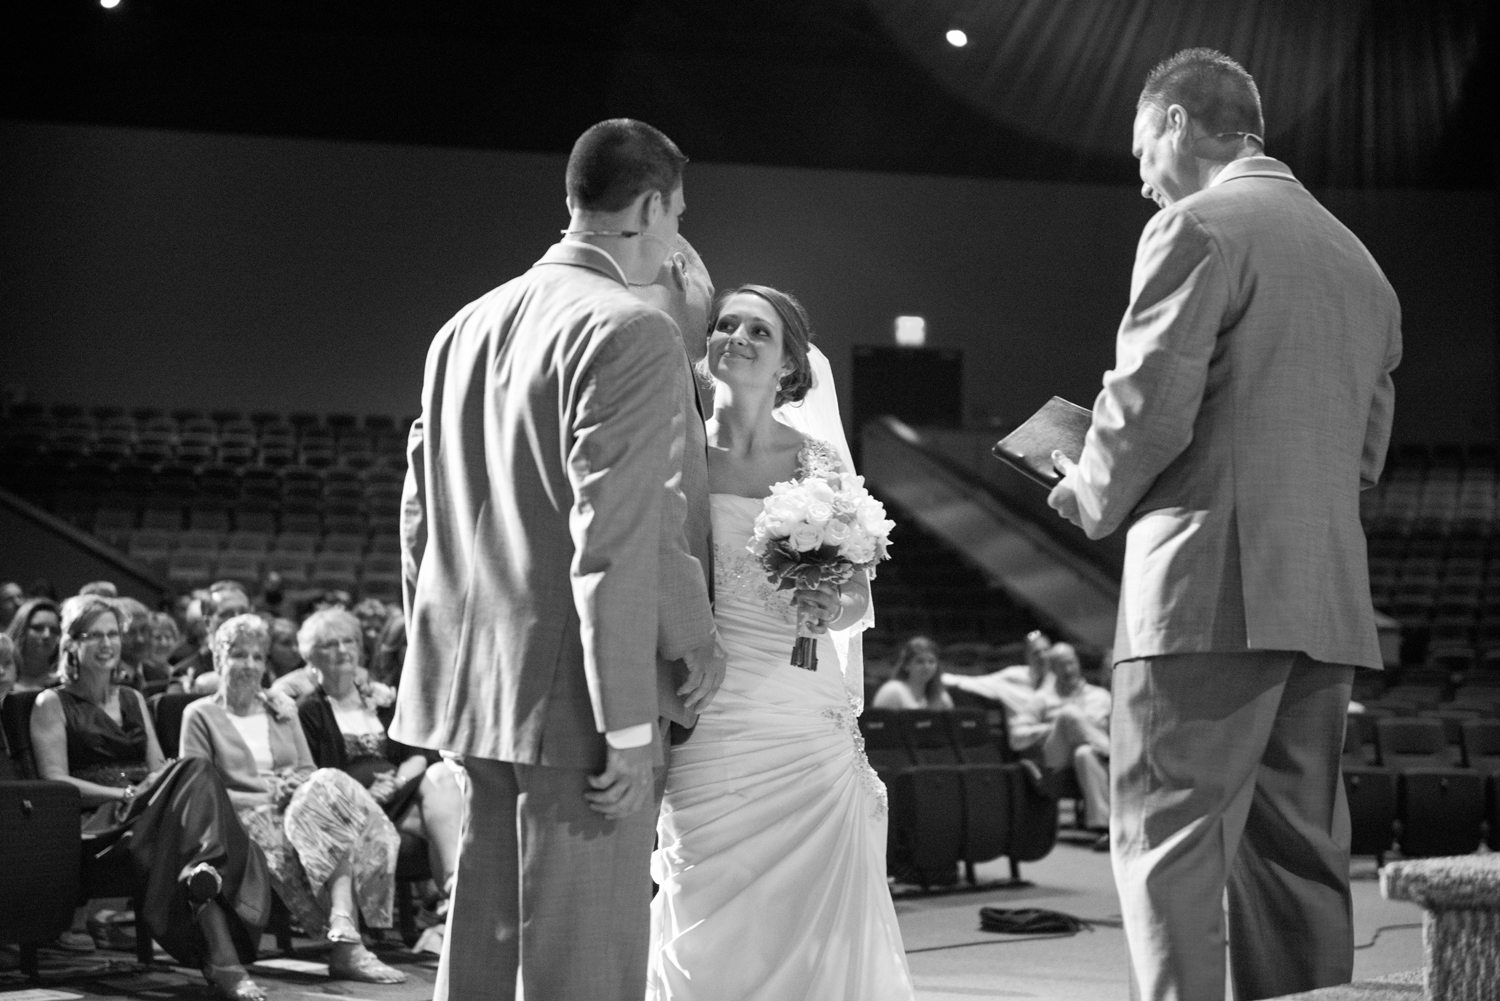 Father giving his daughter away at a wedding, black and white